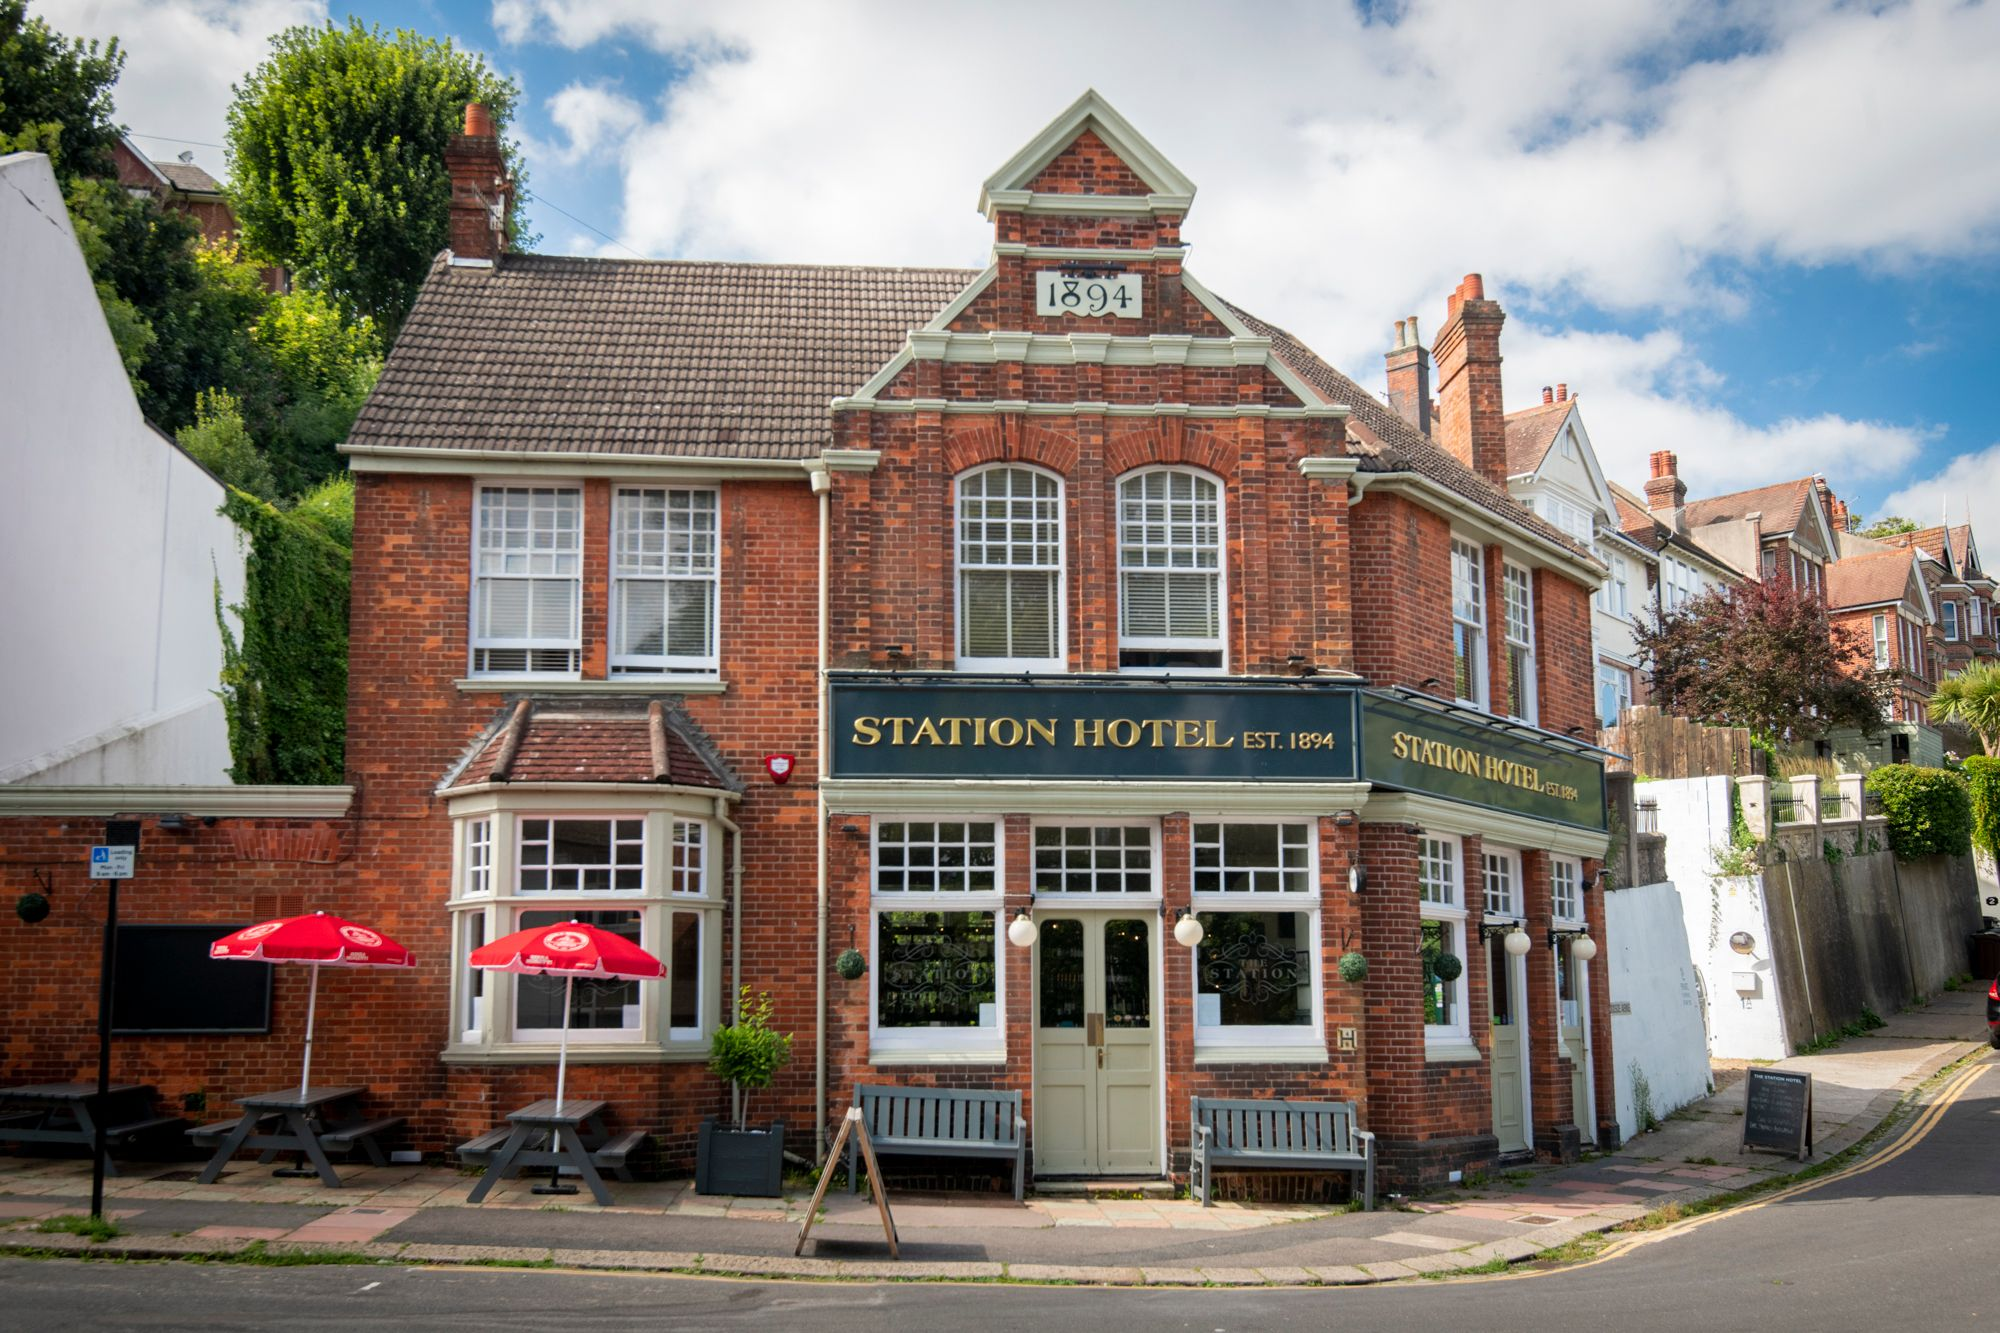 pub with traditional red brick and classic hung sash windows